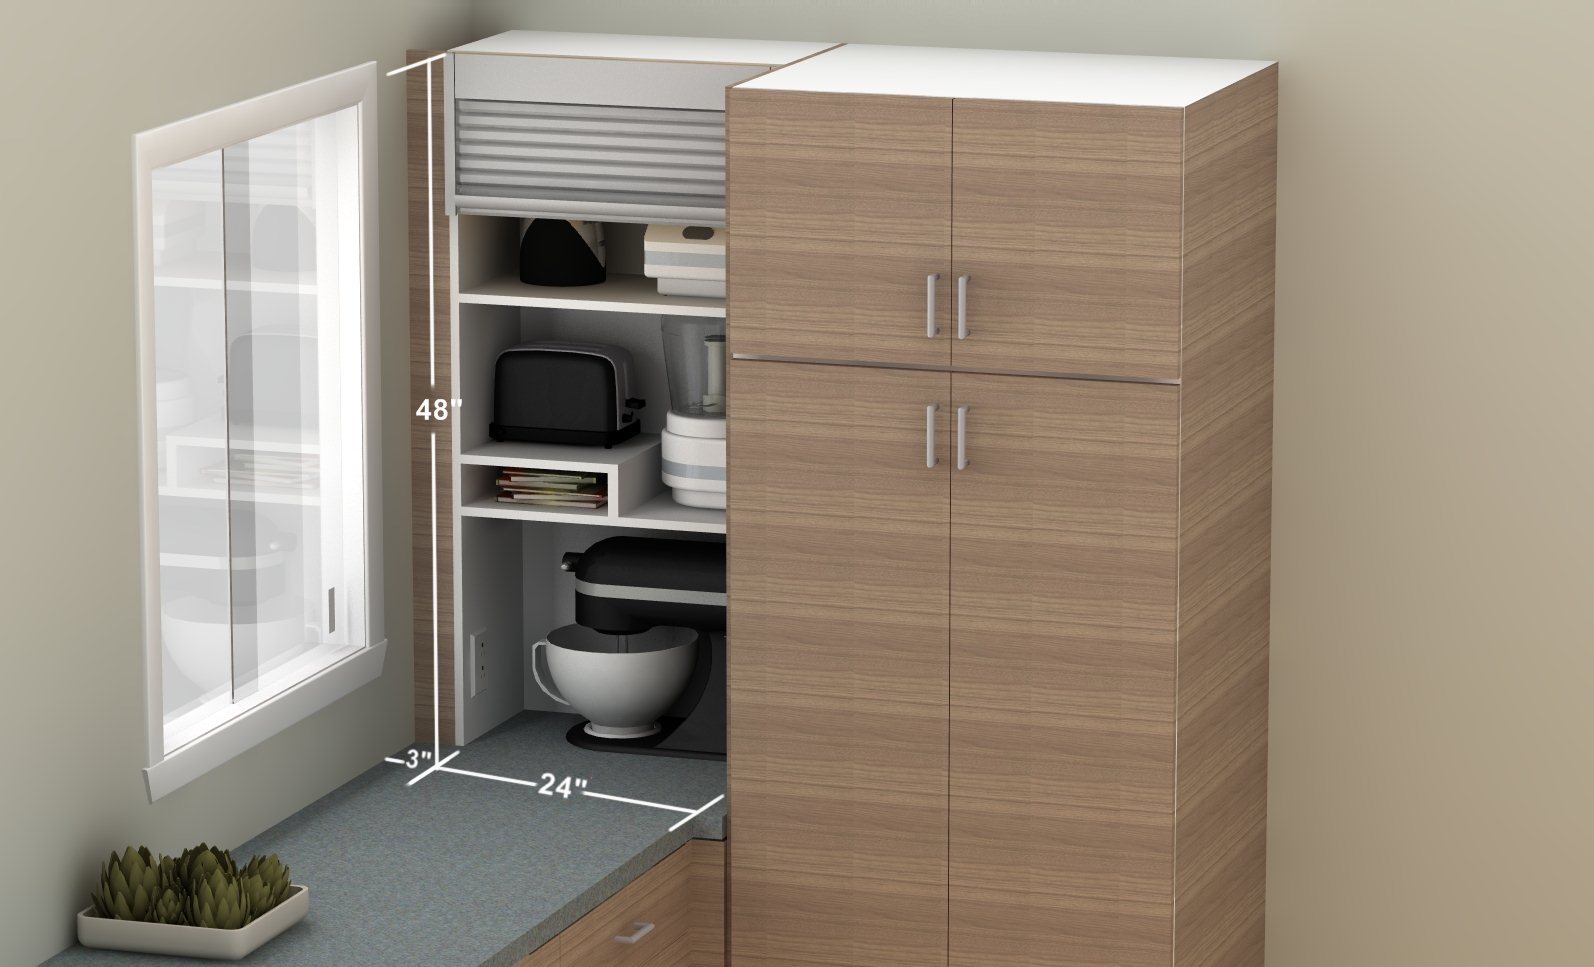 Küchenschrank Mit Rolladen How To Hide Smaller Appliances In Your Ikea Kitchen